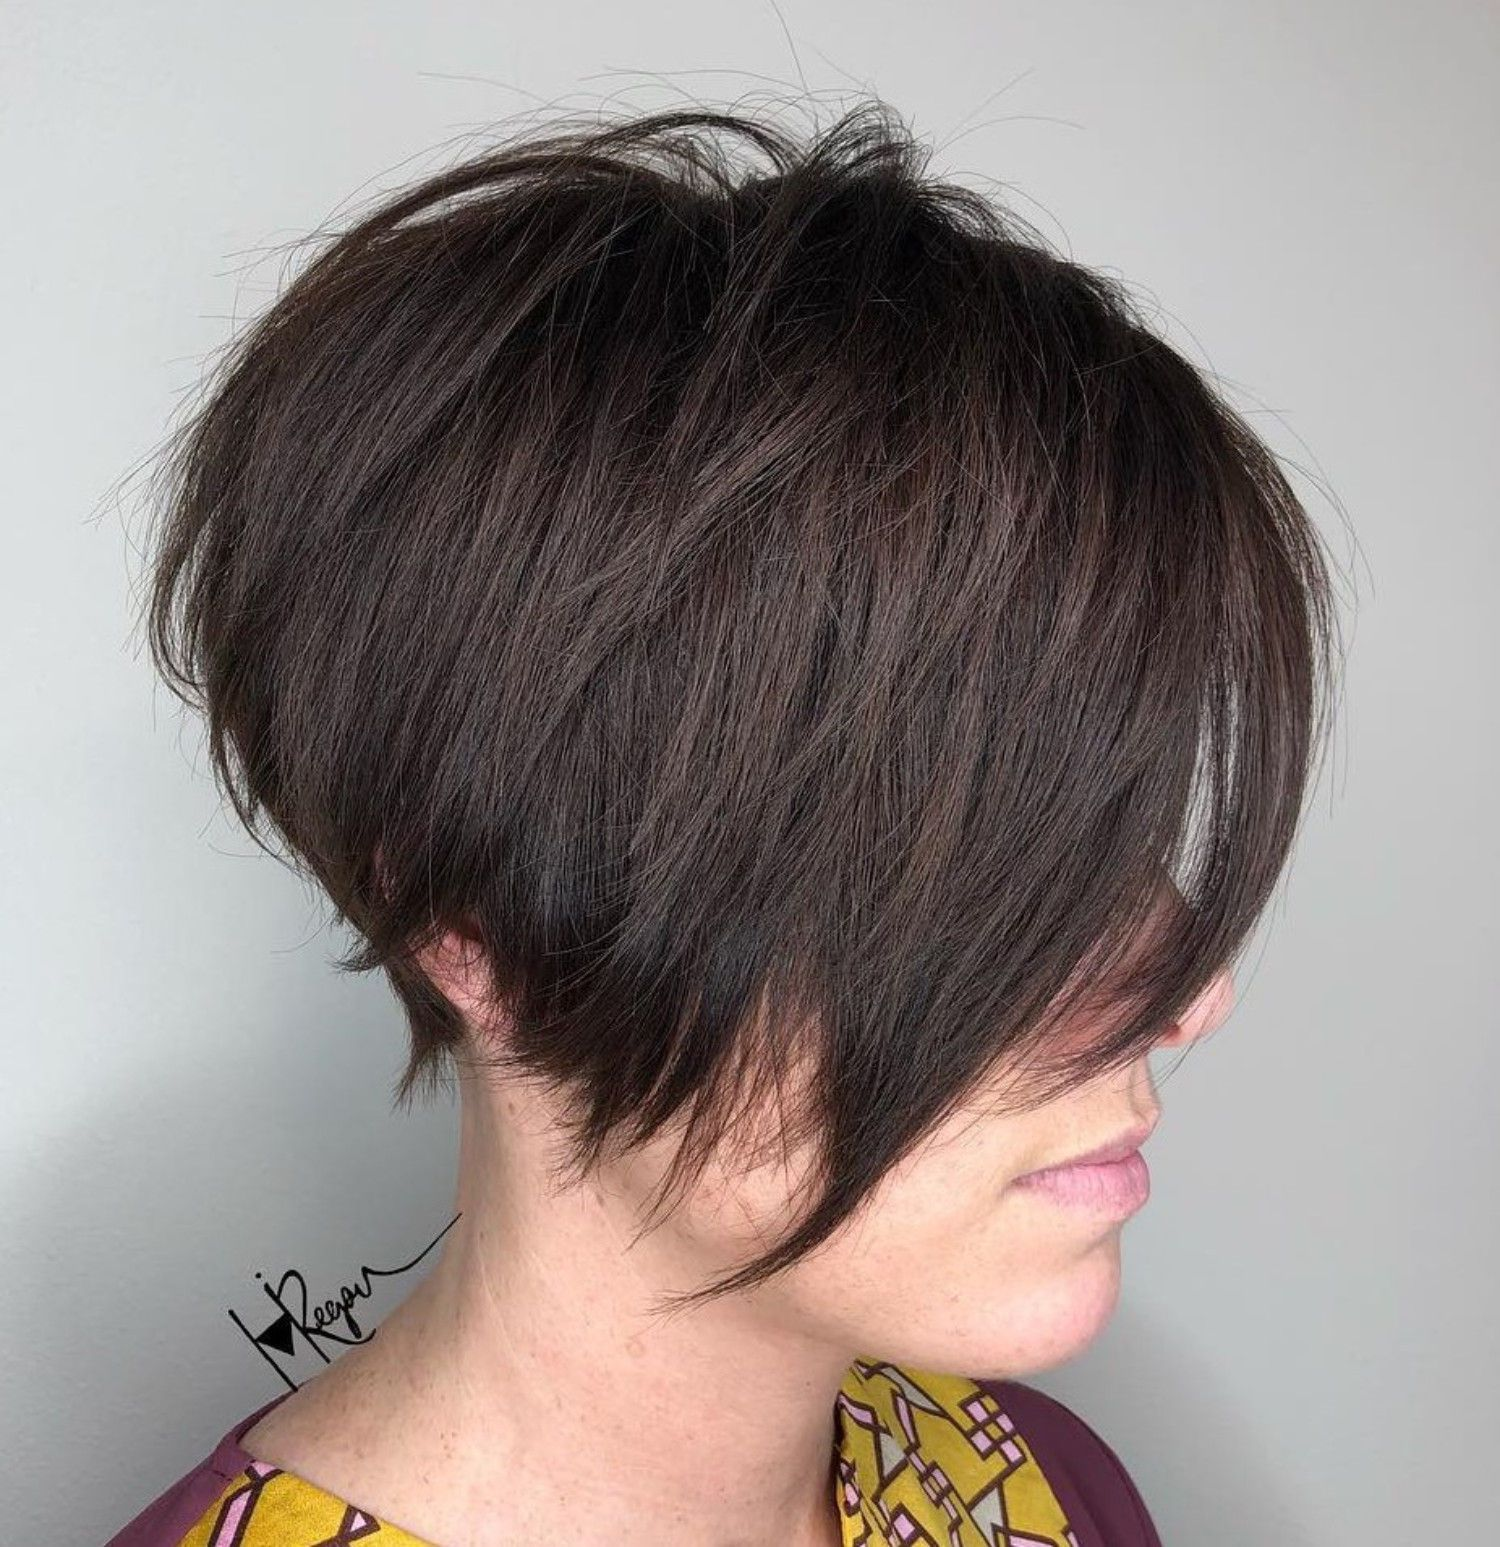 Jagged Pixie With Long Side Bangs Short Shag Hairstyles Short Hair With Layers Shag Hairstyles